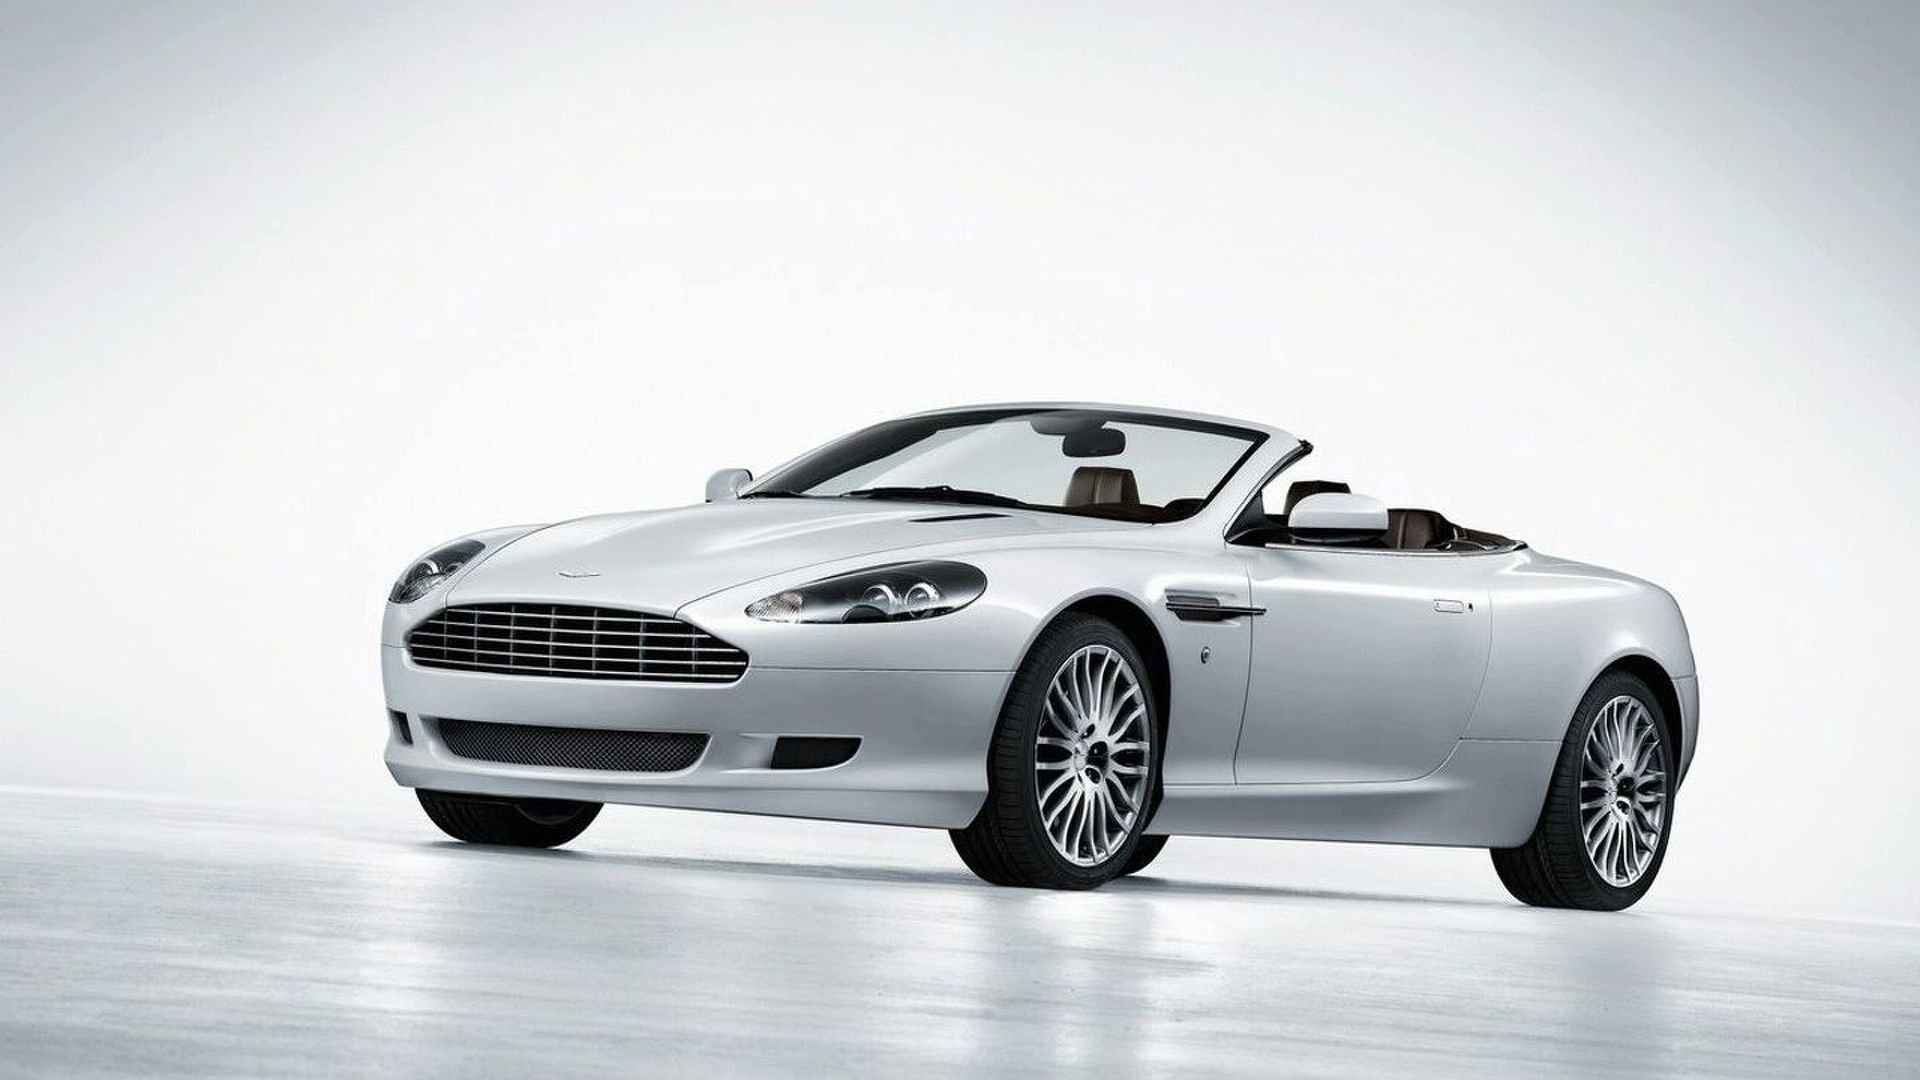 Aston Martin will recall 75 percent of all cars made since 2007, affects 17,590 units